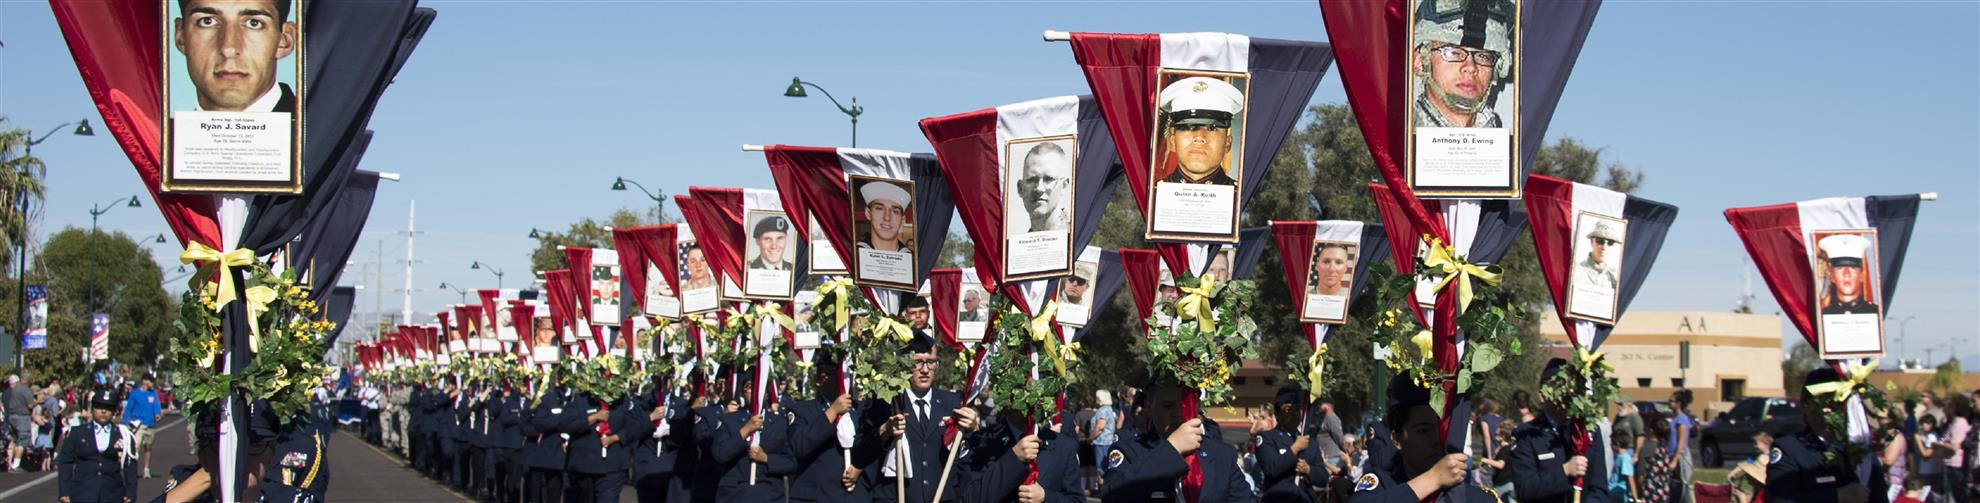 Honor fallen local heroes